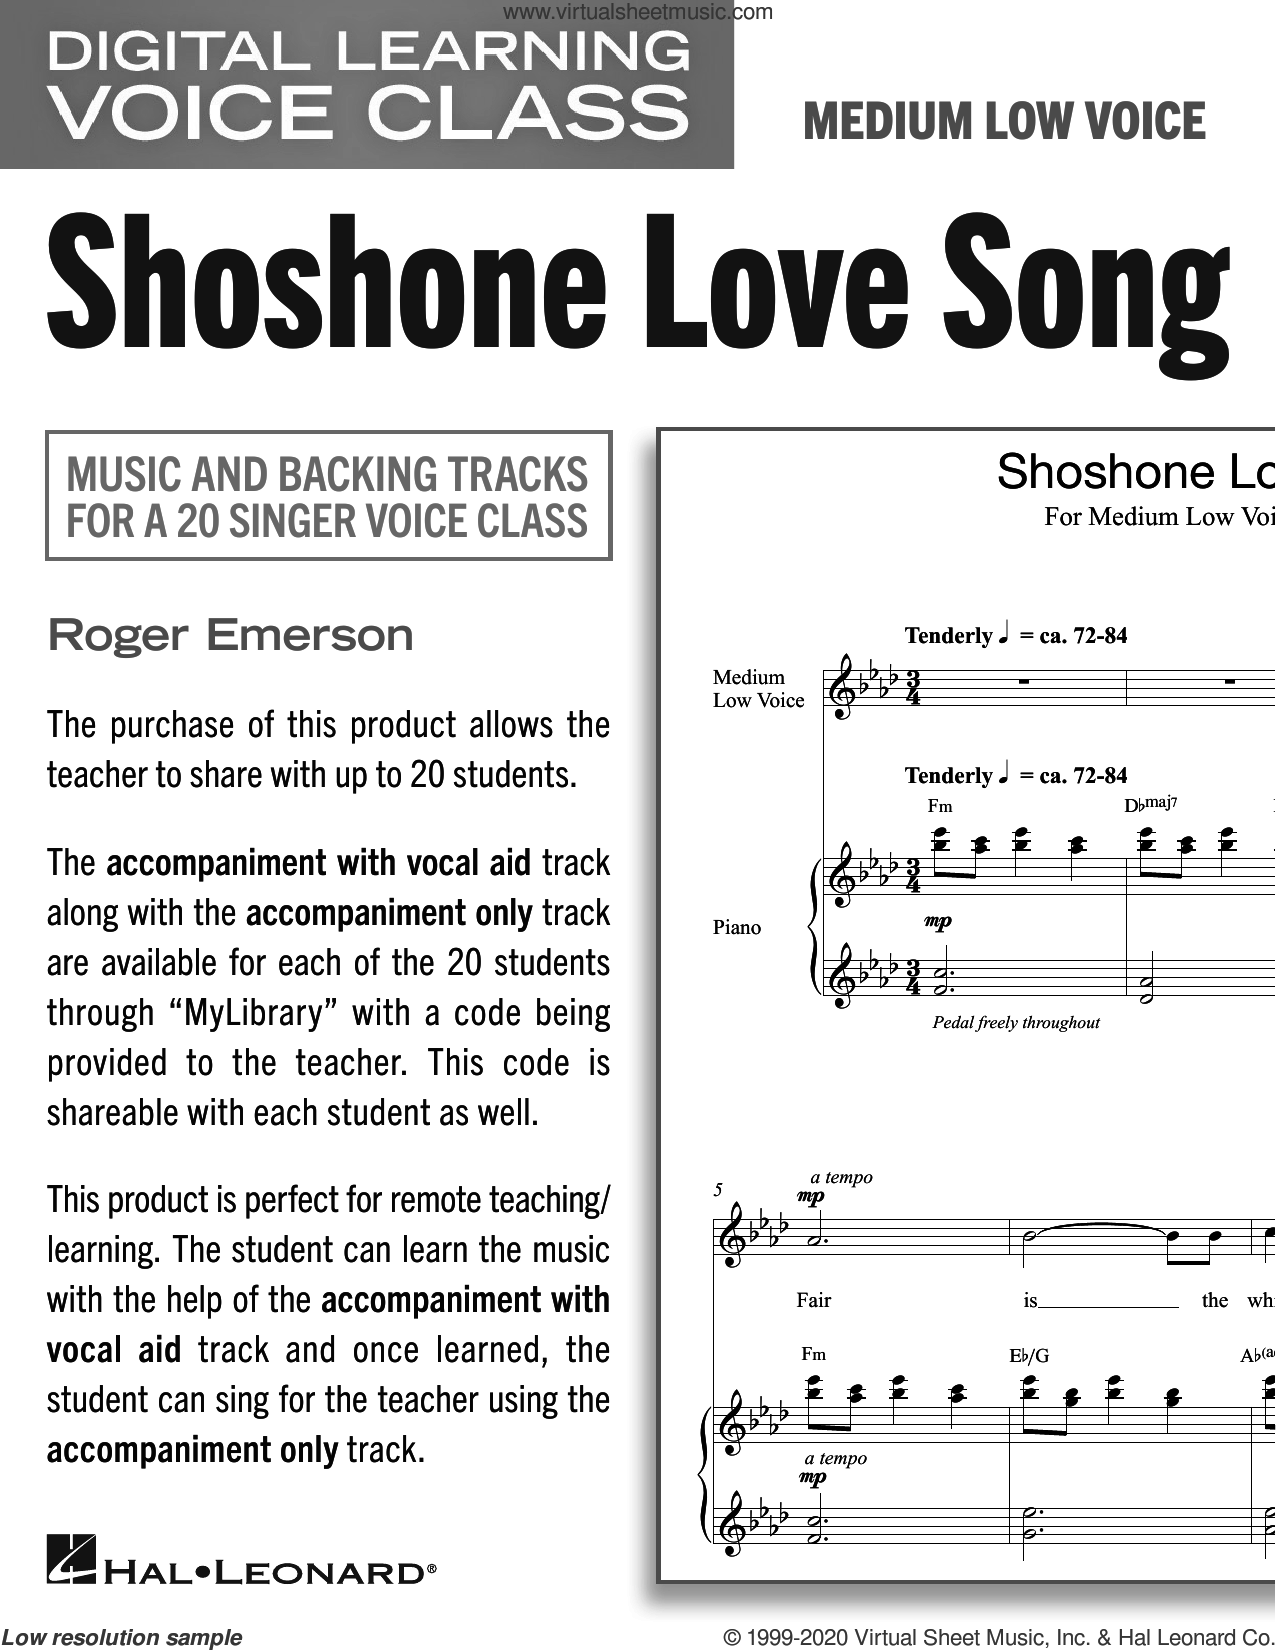 Shoshone Love Song (Medium Low Voice) (includes Audio) sheet music for voice and piano (Medium Low Voice) by Roger Emerson, intermediate skill level